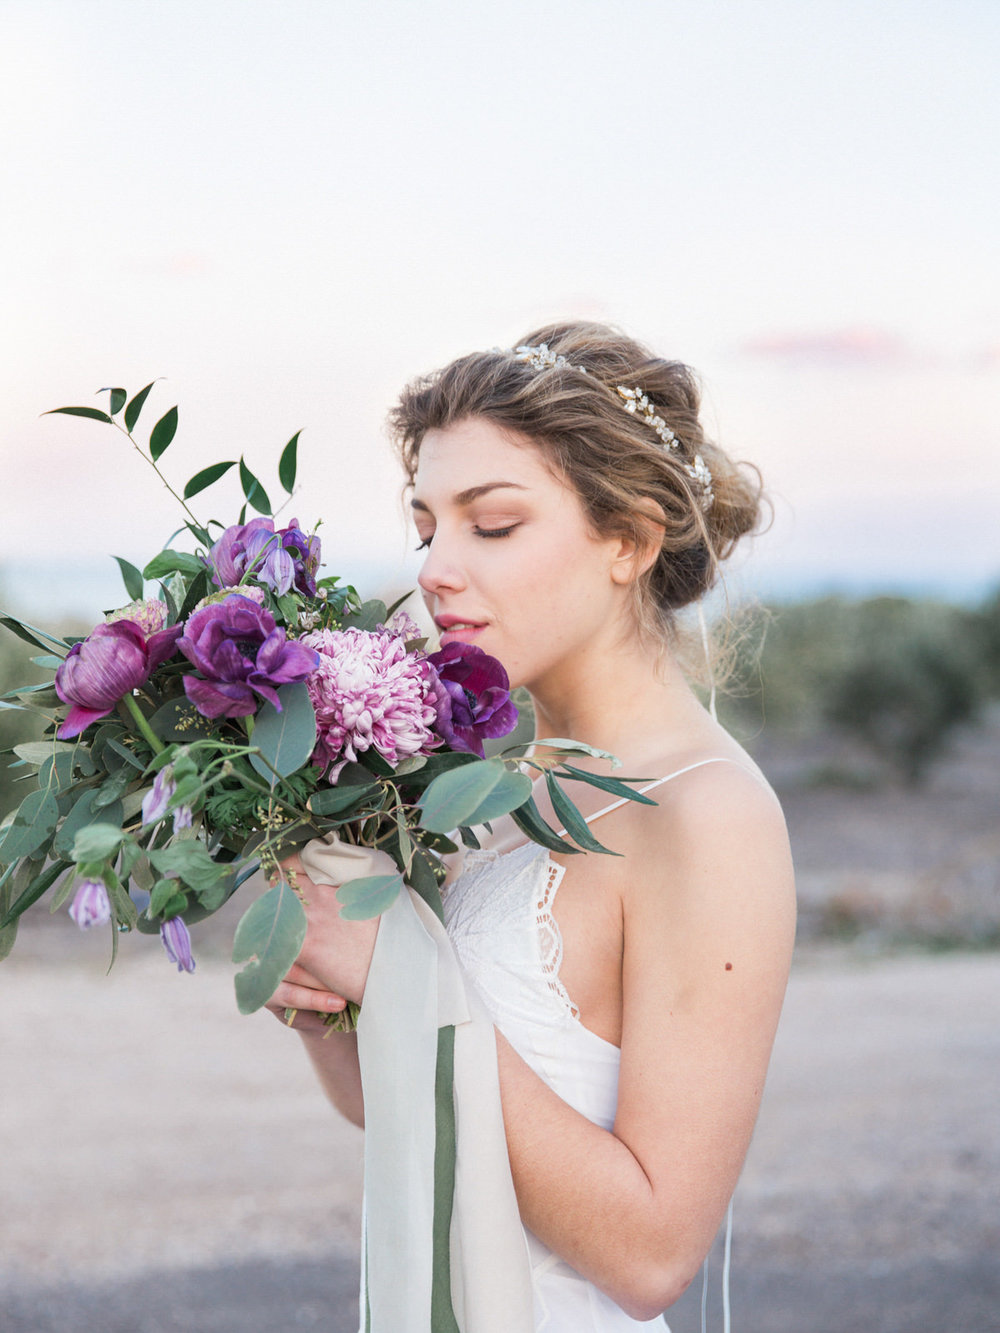 Boho Chic Bohemian Wedding Photographer